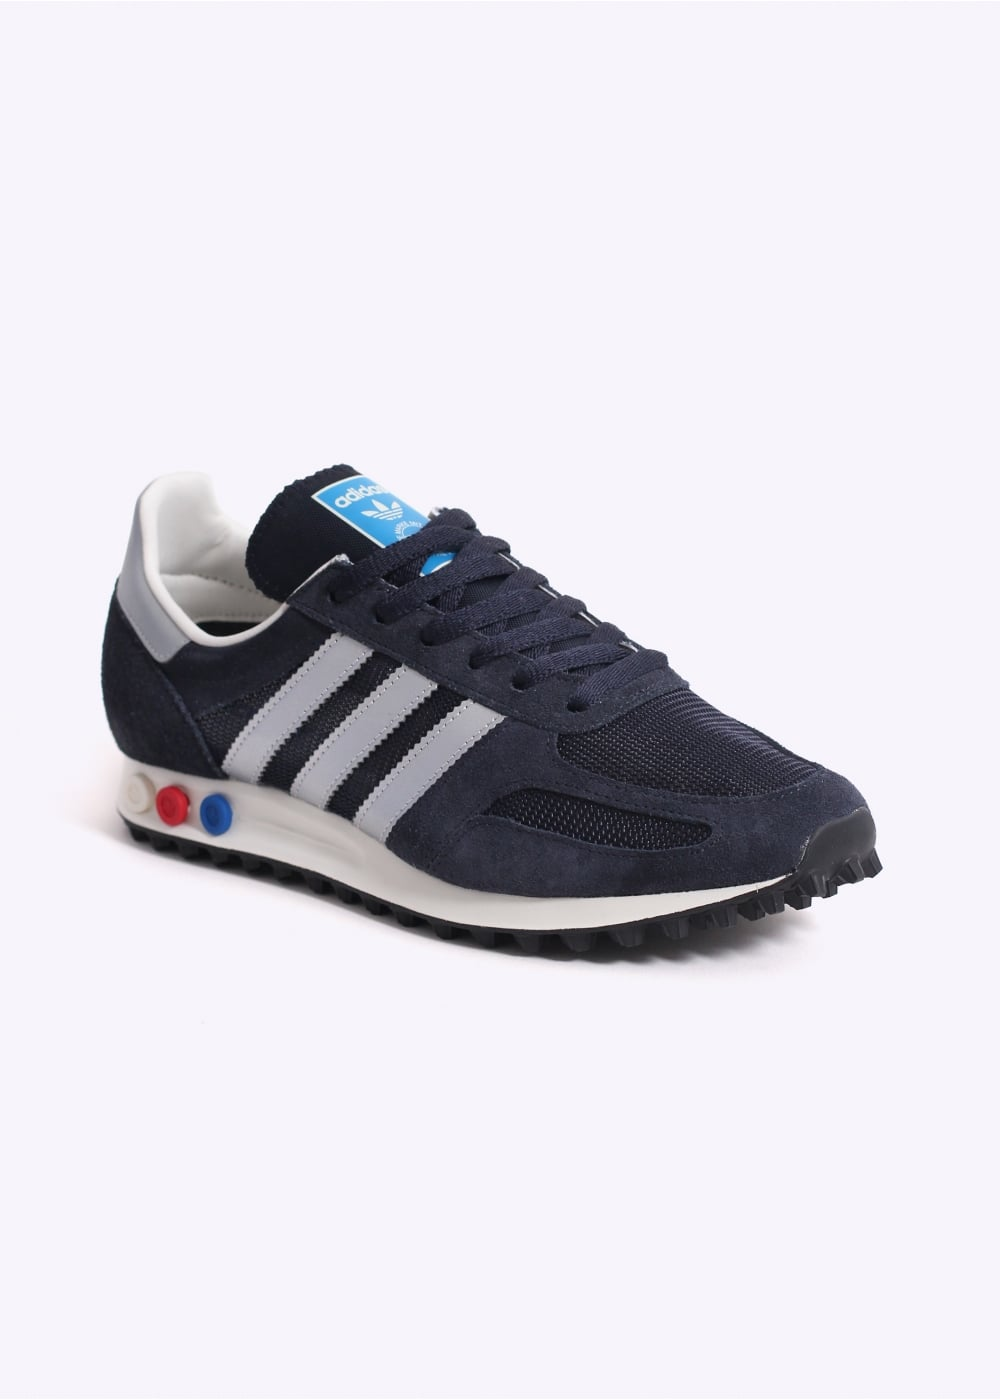 adidas originals footwear la trainer og navy adidas. Black Bedroom Furniture Sets. Home Design Ideas